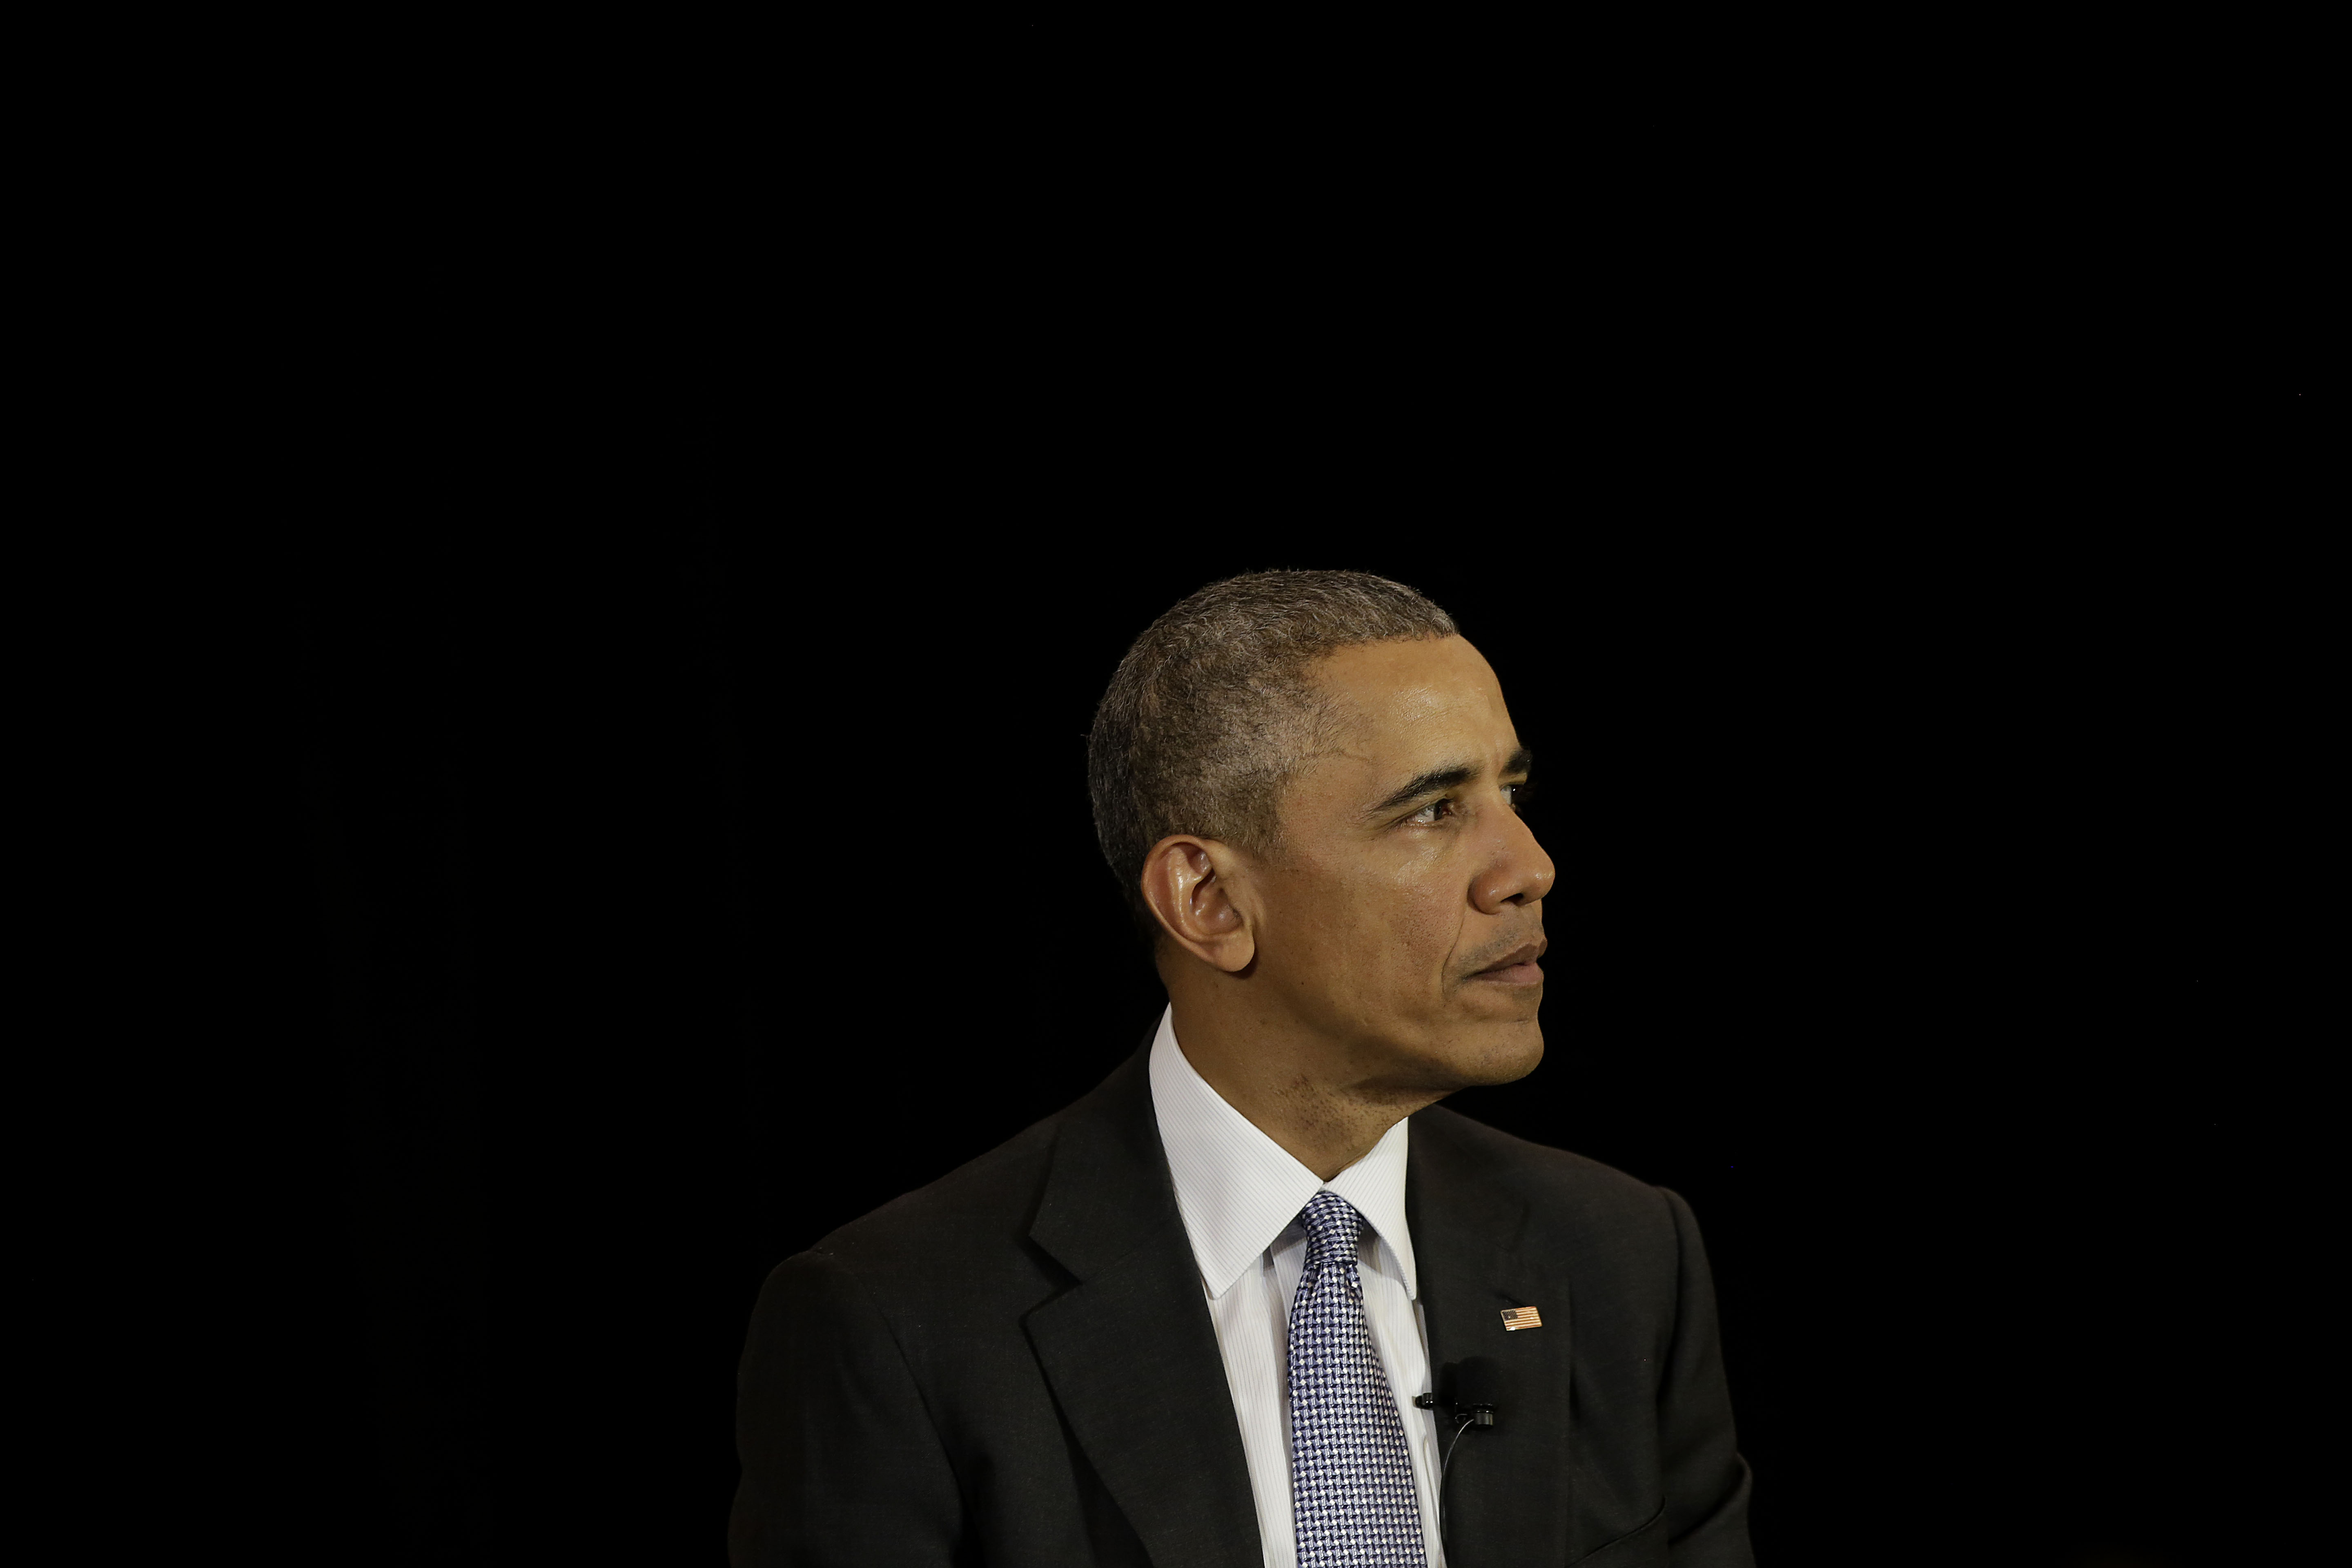 President Barack Obama speaks at the University of Chicago Law School on April 7, in Chicago, Illinois.